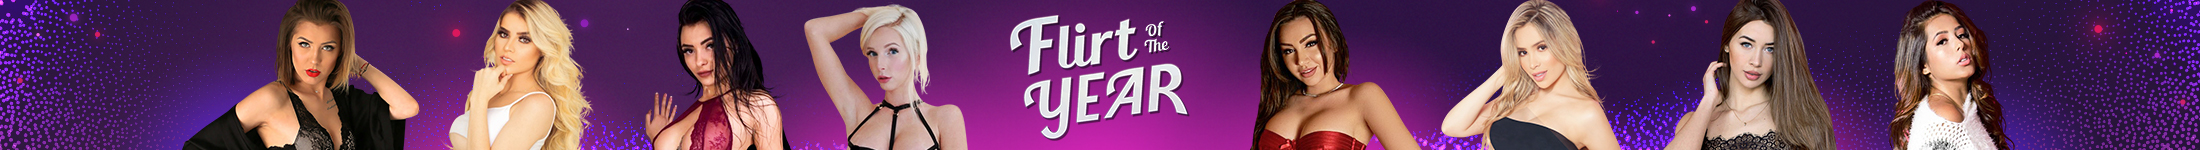 Flirt of the Year Promo